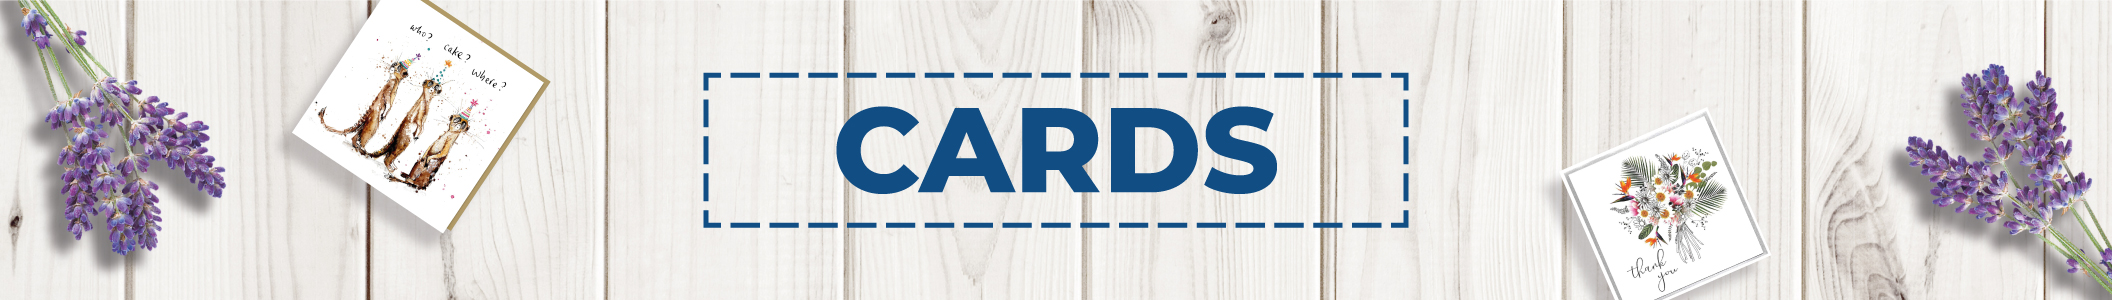 Top Picks - Cards Banner 2112x200